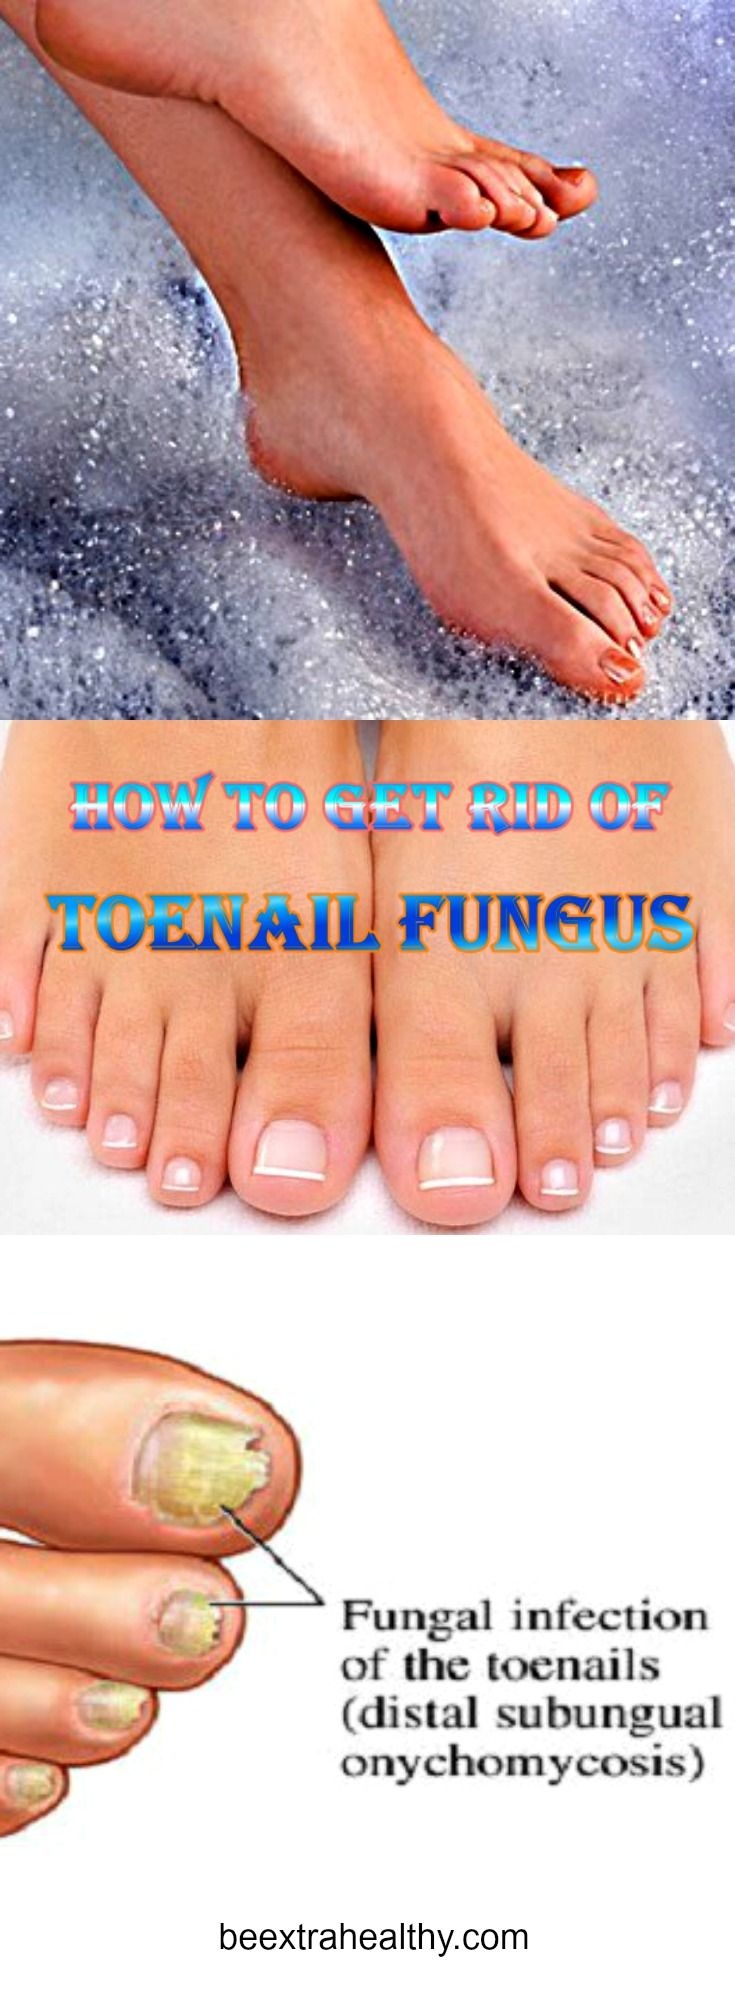 Here's How to Get Rid of Fungal Infections of the Feet